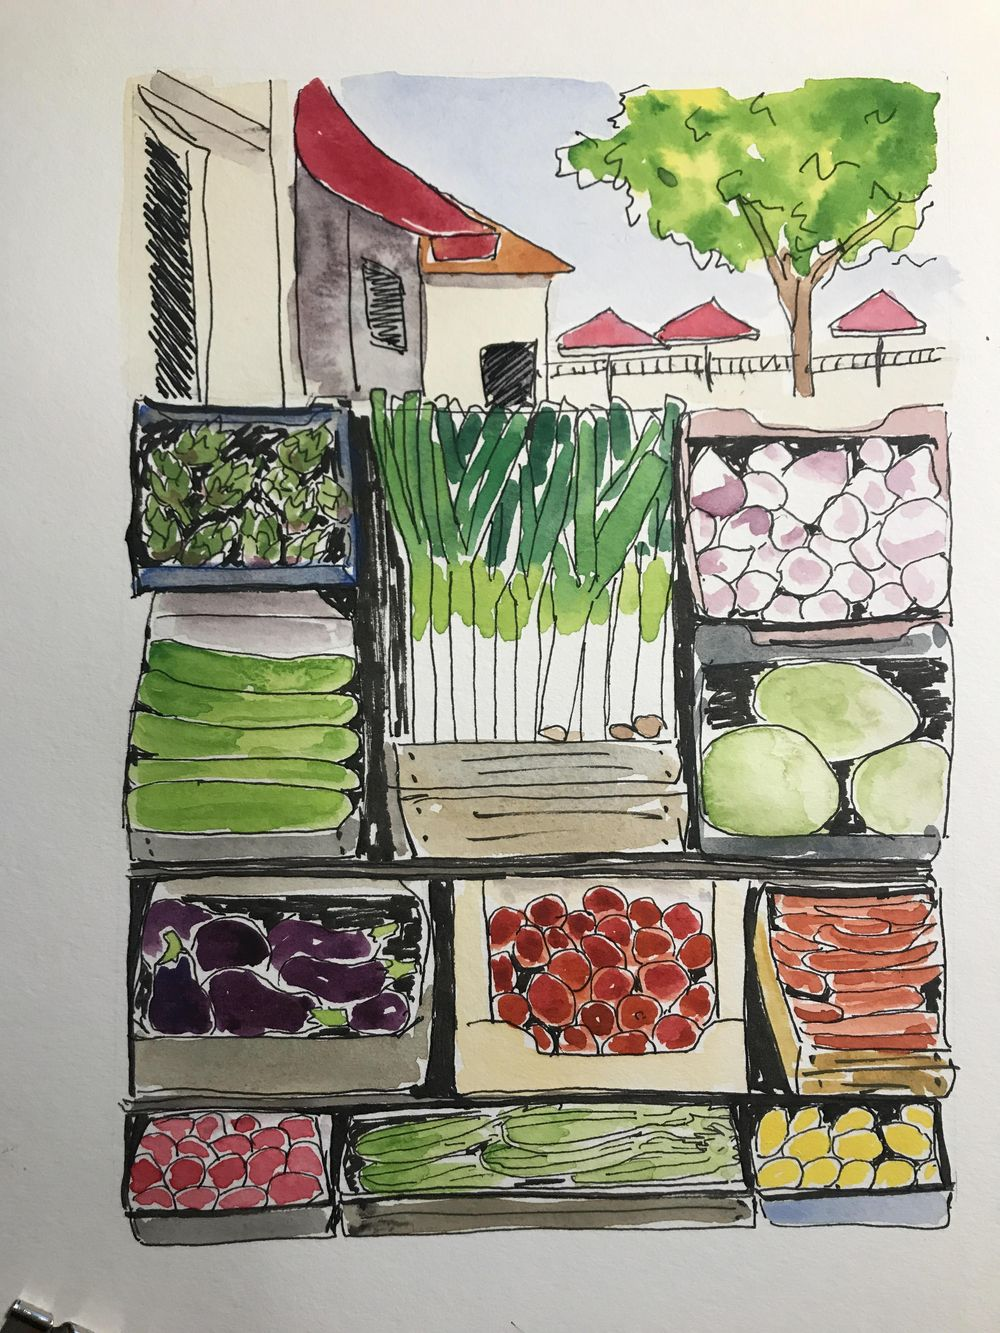 produce stand - image 1 - student project